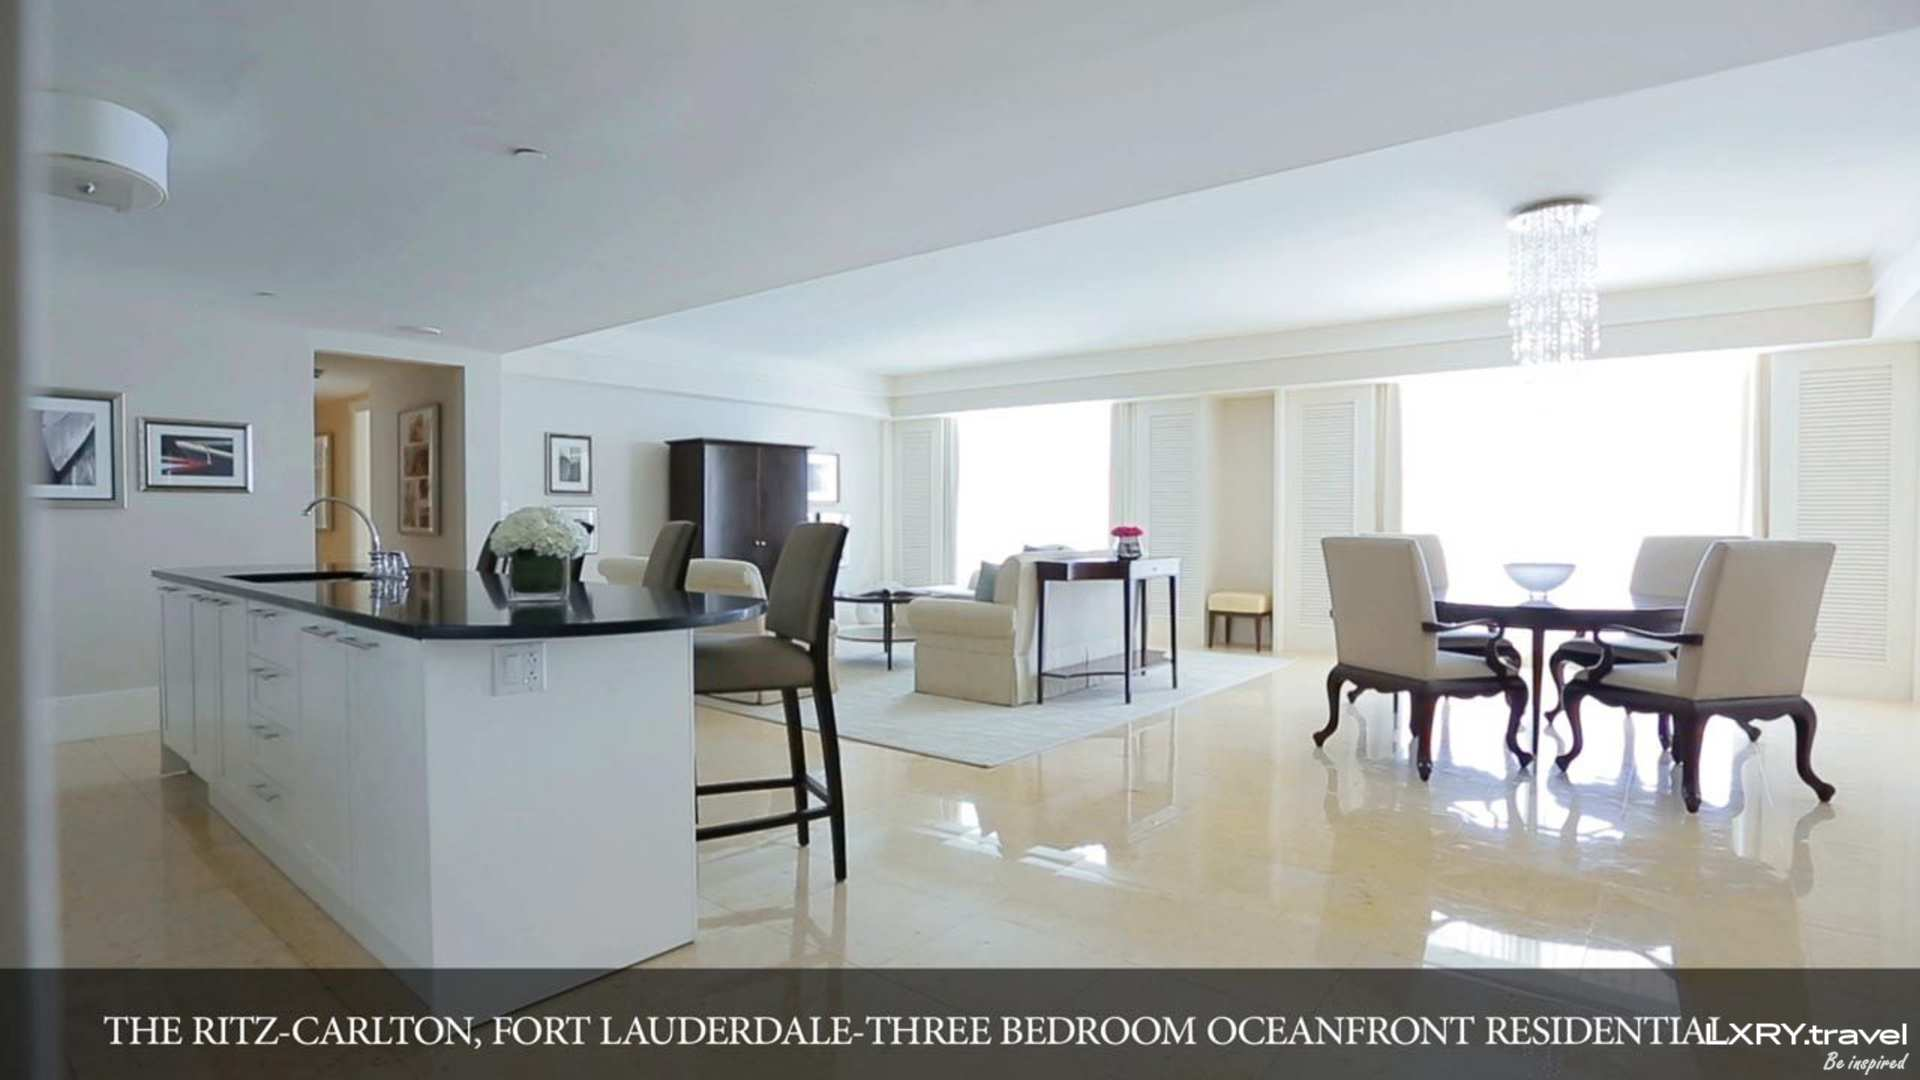 The Ritz-Carlton, Fort Lauderdale 41/43